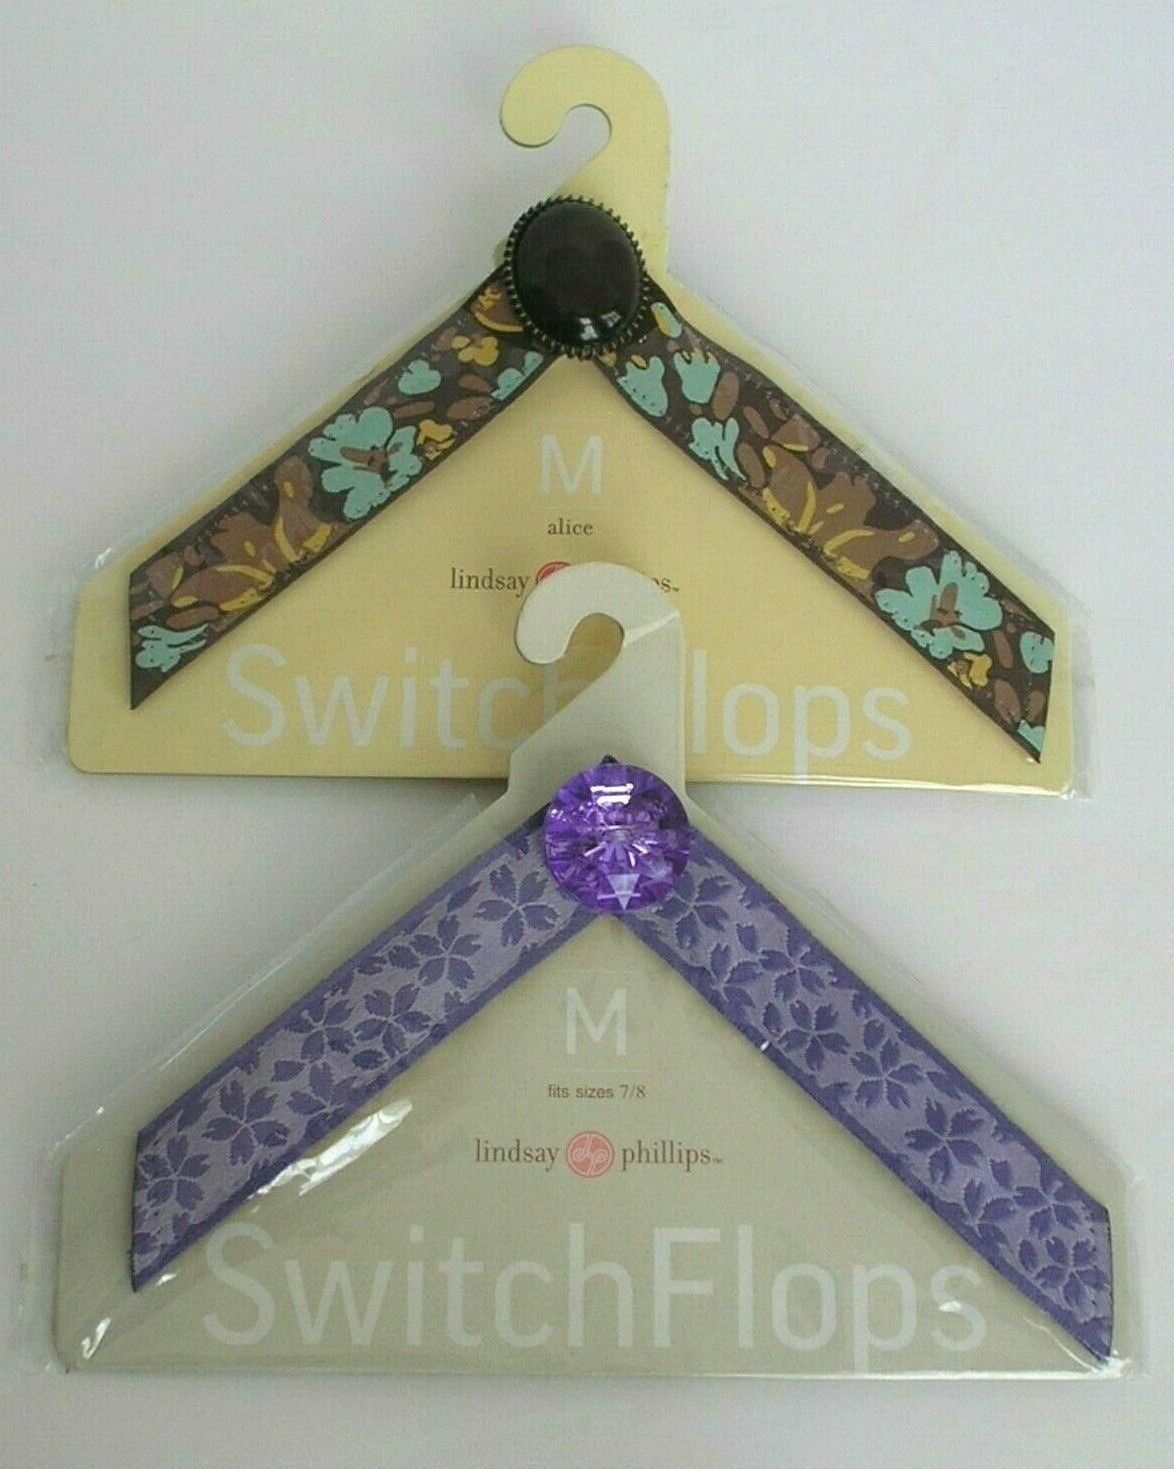 TWO SETS of LINDSAY PHILLIPS SWITCH FLOPS STRAPS - CORA & ALICE - BRAND NEW